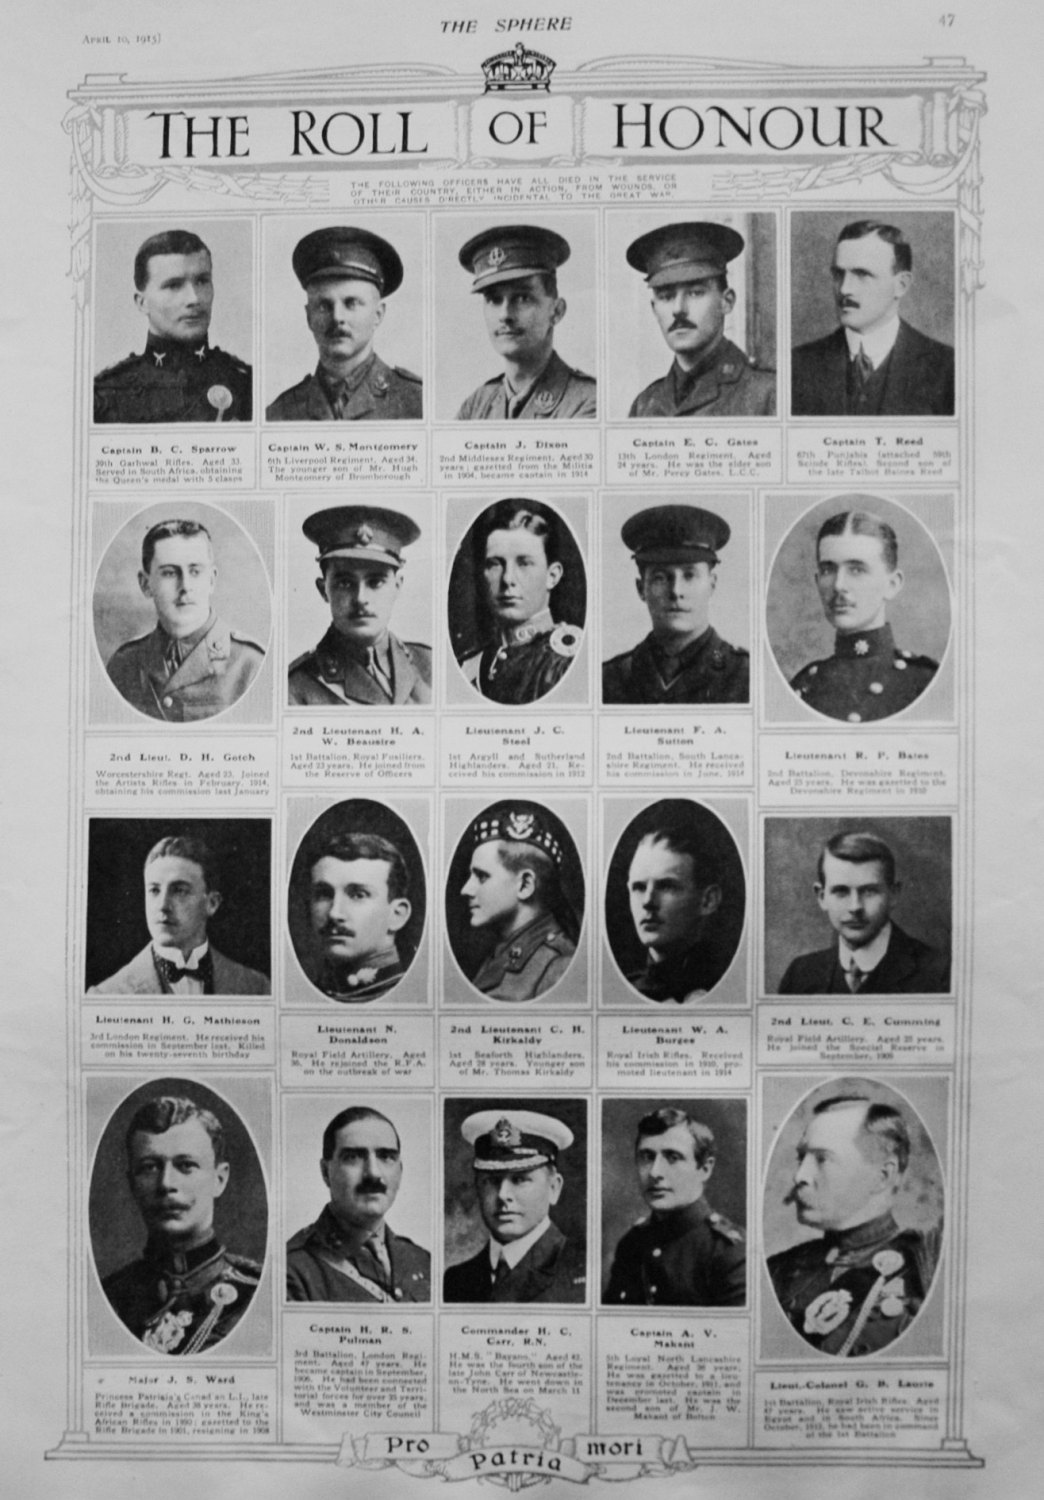 The Roll of Honour. April 10th 1915.